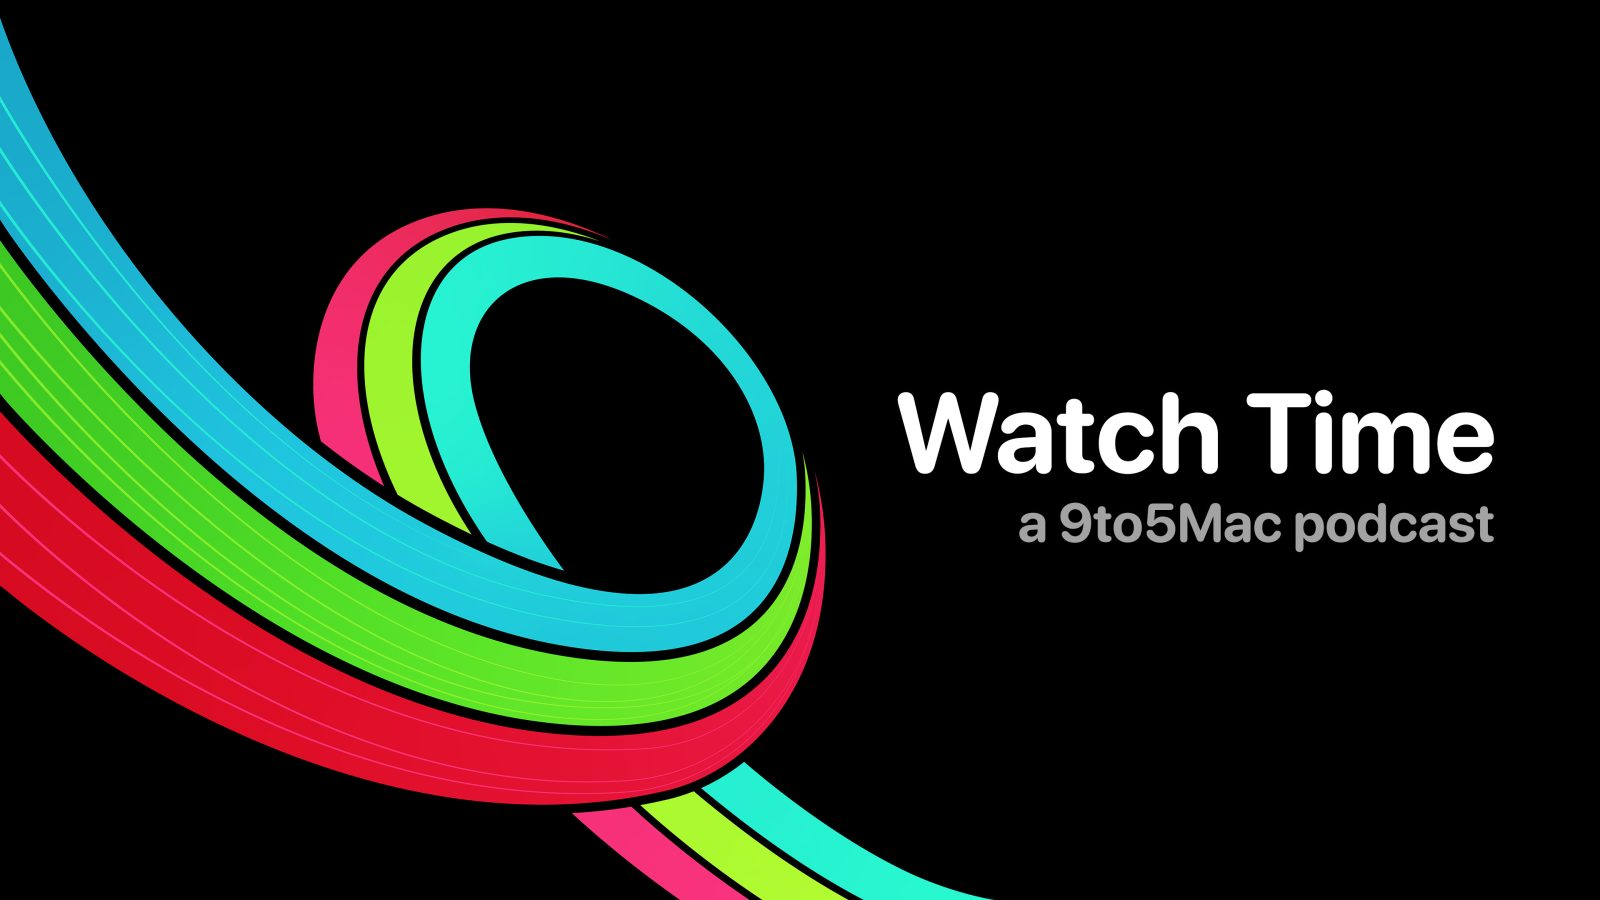 9to5Mac Watch Time episode 9: Passion for technology with Will Sigmon